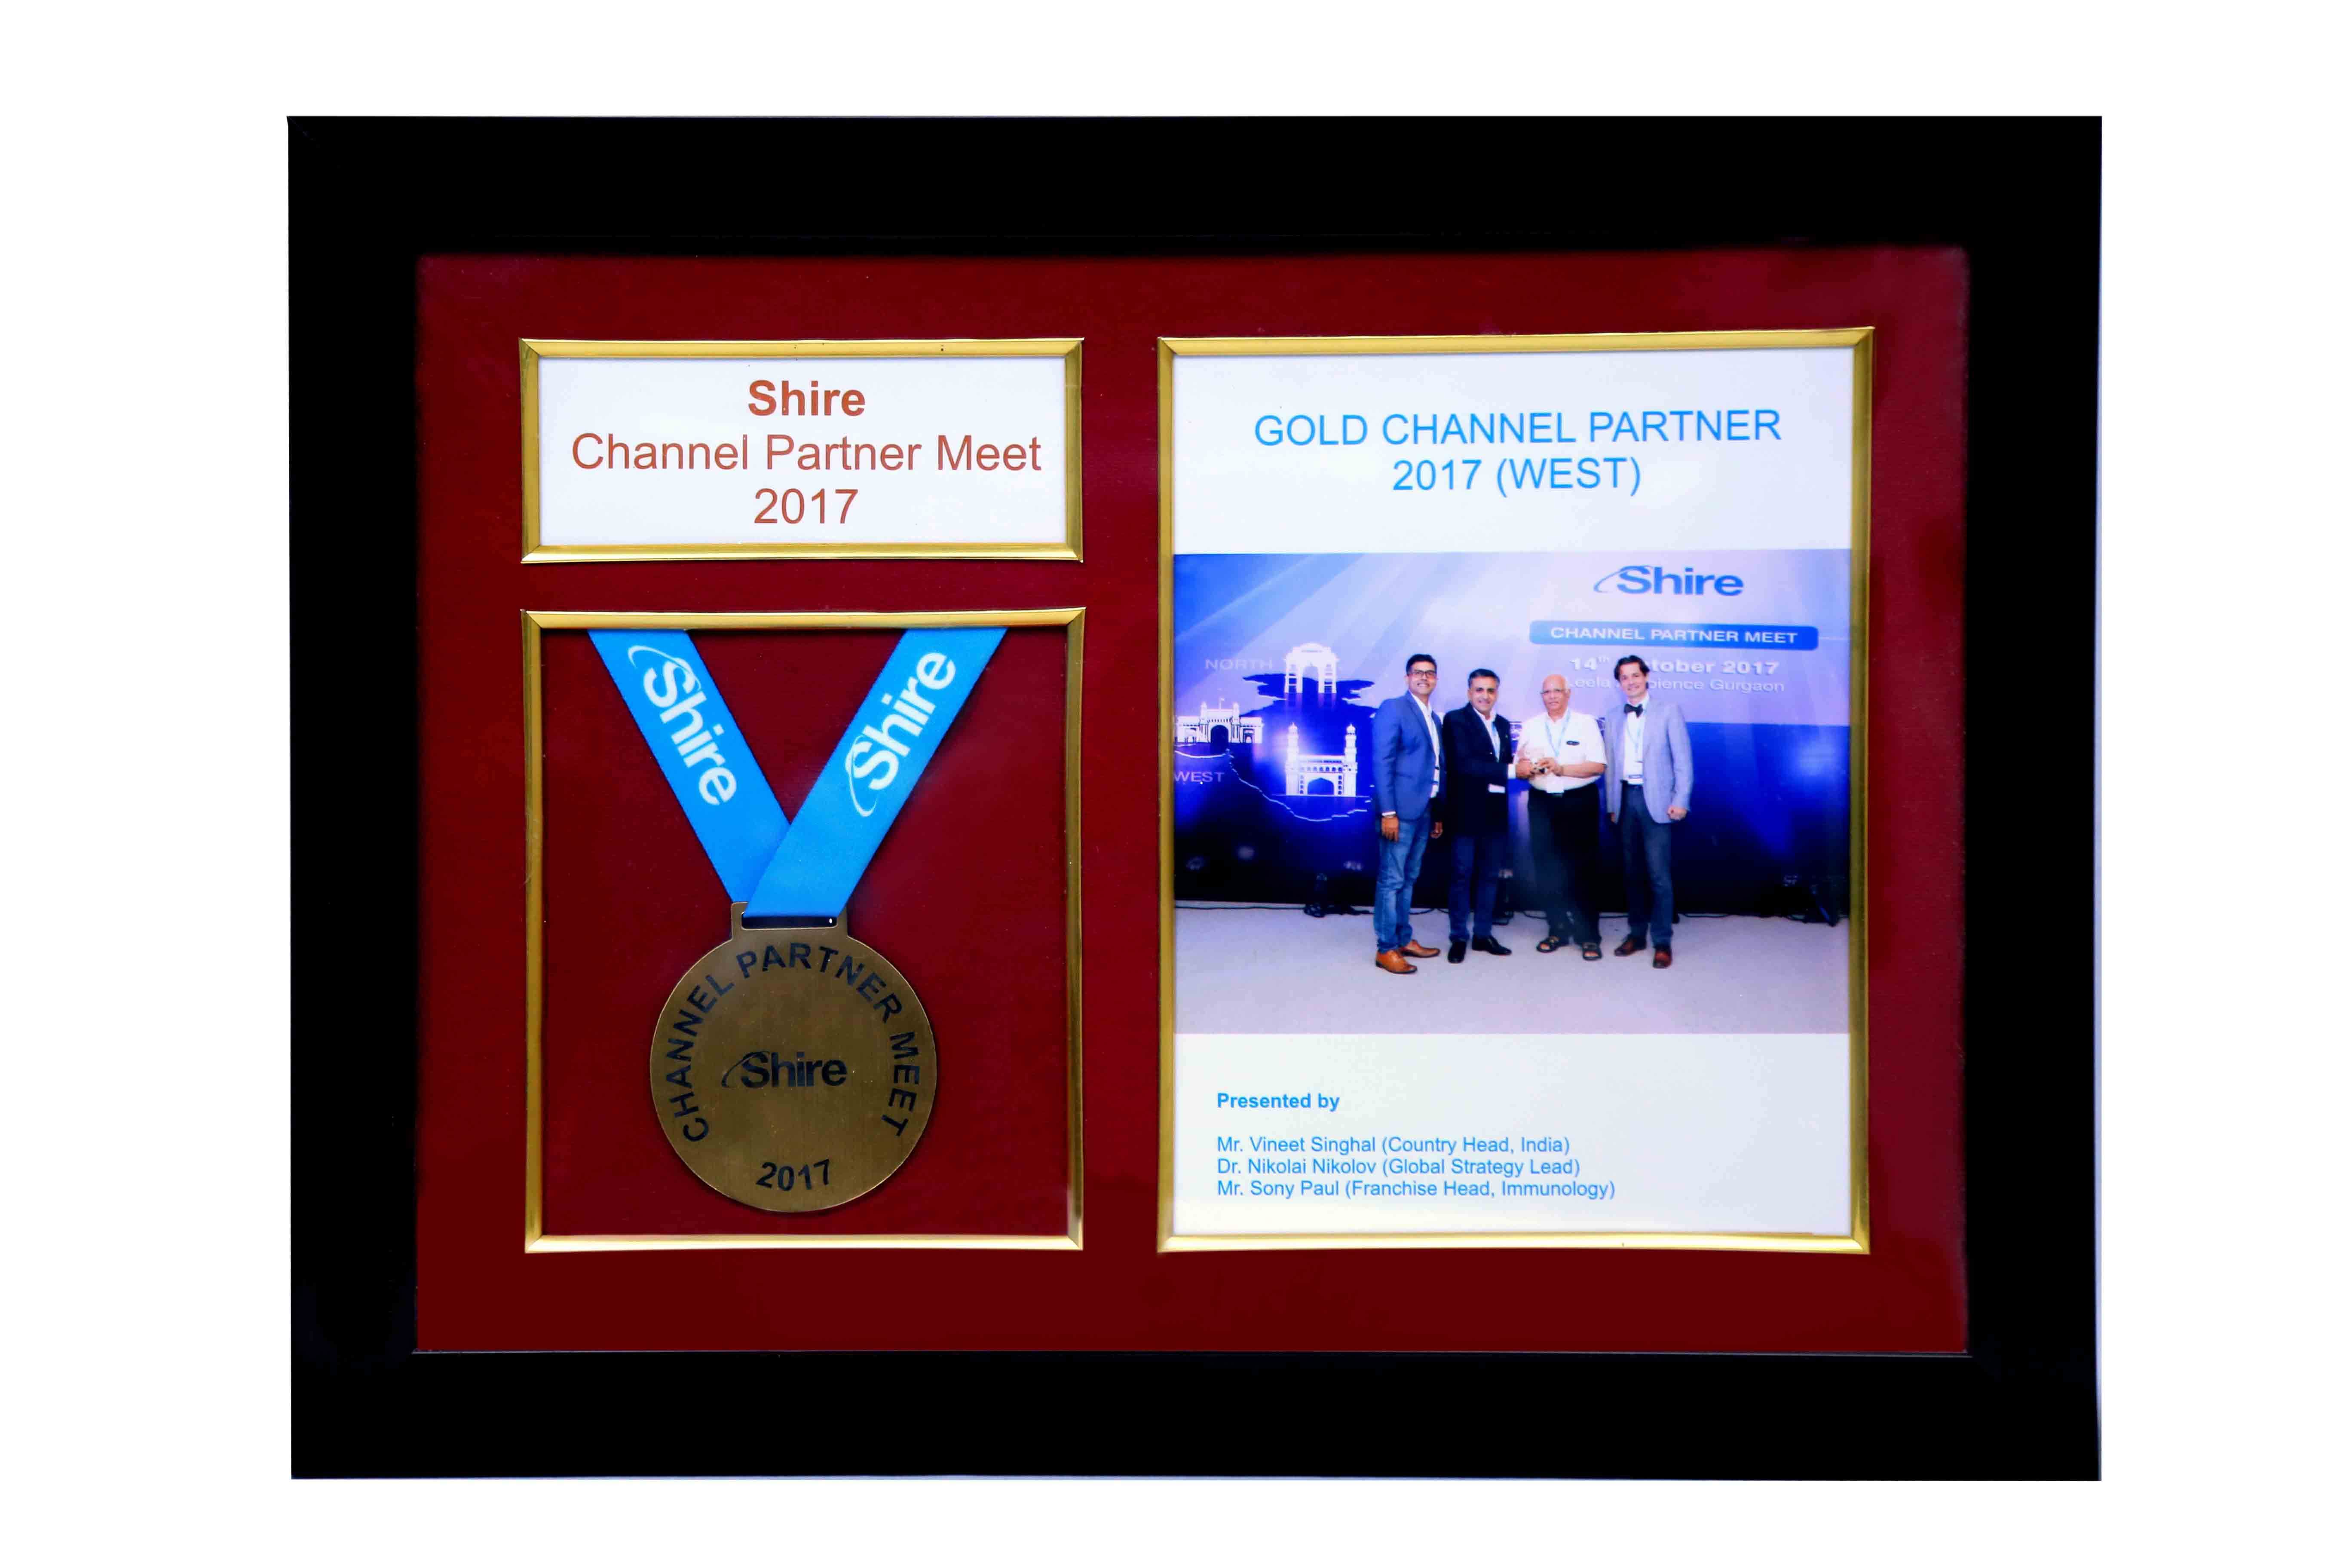 Award for Gold Channel Partner By Shire